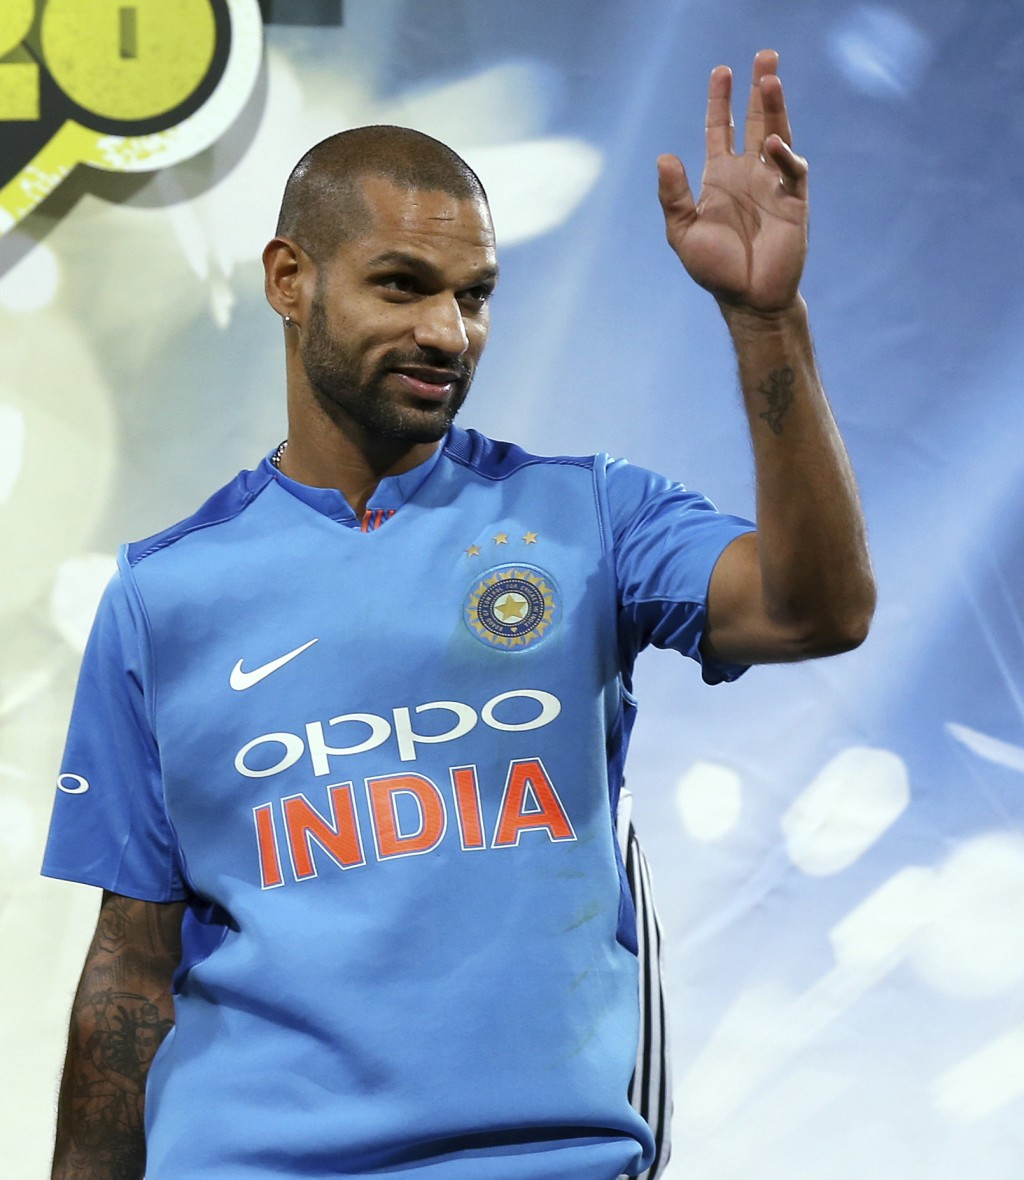 India's Shikhar Dhawan waves after being named man of the series after their Twenty20 cricket match against Australia in Sydney, Sunday, Nov. 25, 2018